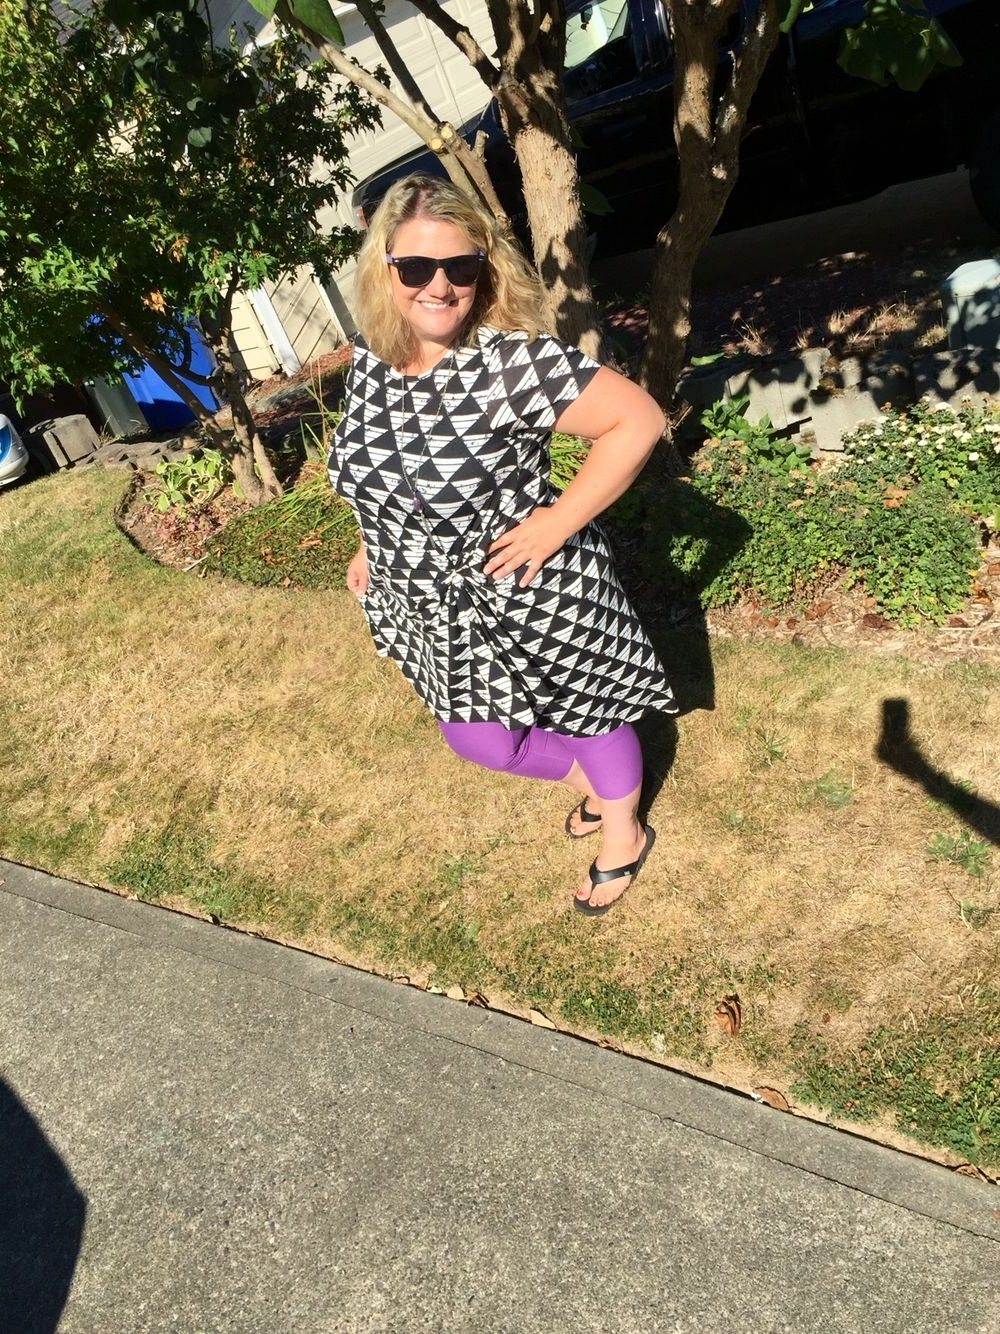 Carly Triangle Tables Within Well Liked Lularoe Black And White Triangle Carly And Purple Leggings (View 10 of 25)